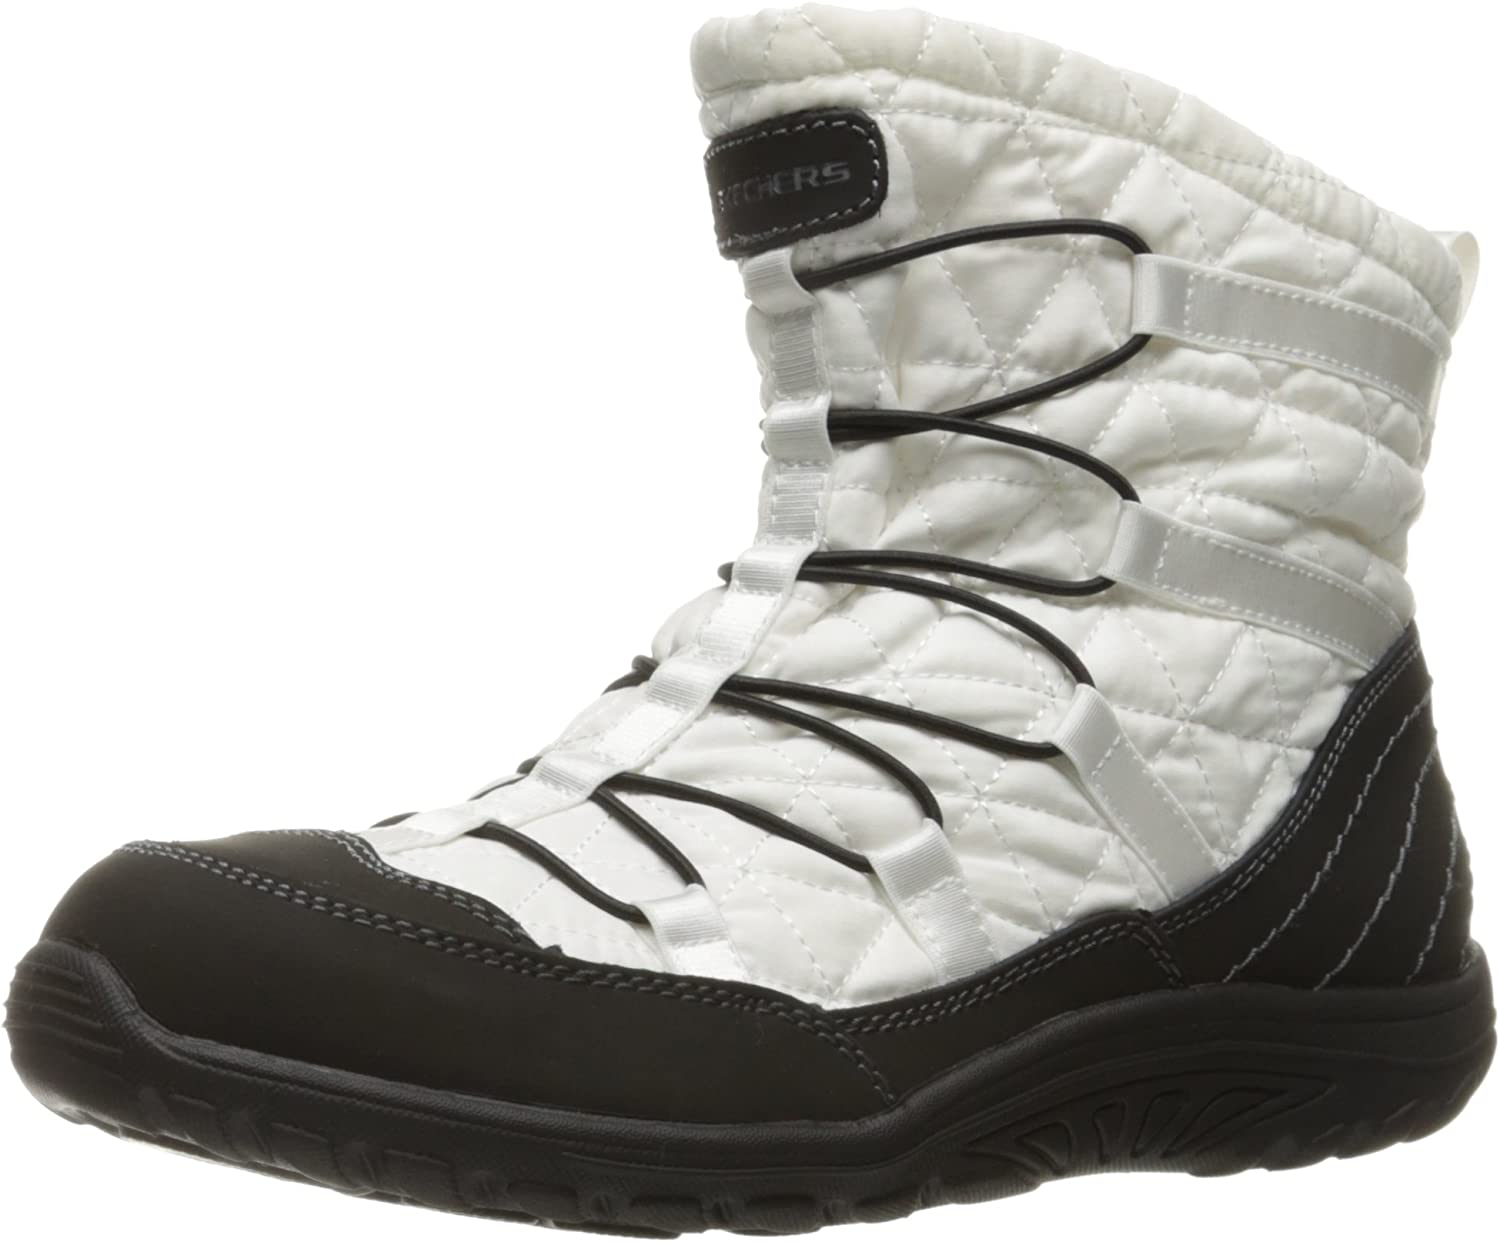 Skechers Womens Reggae Fest Steady Quilted Bungee Bootie Ankle Bootie